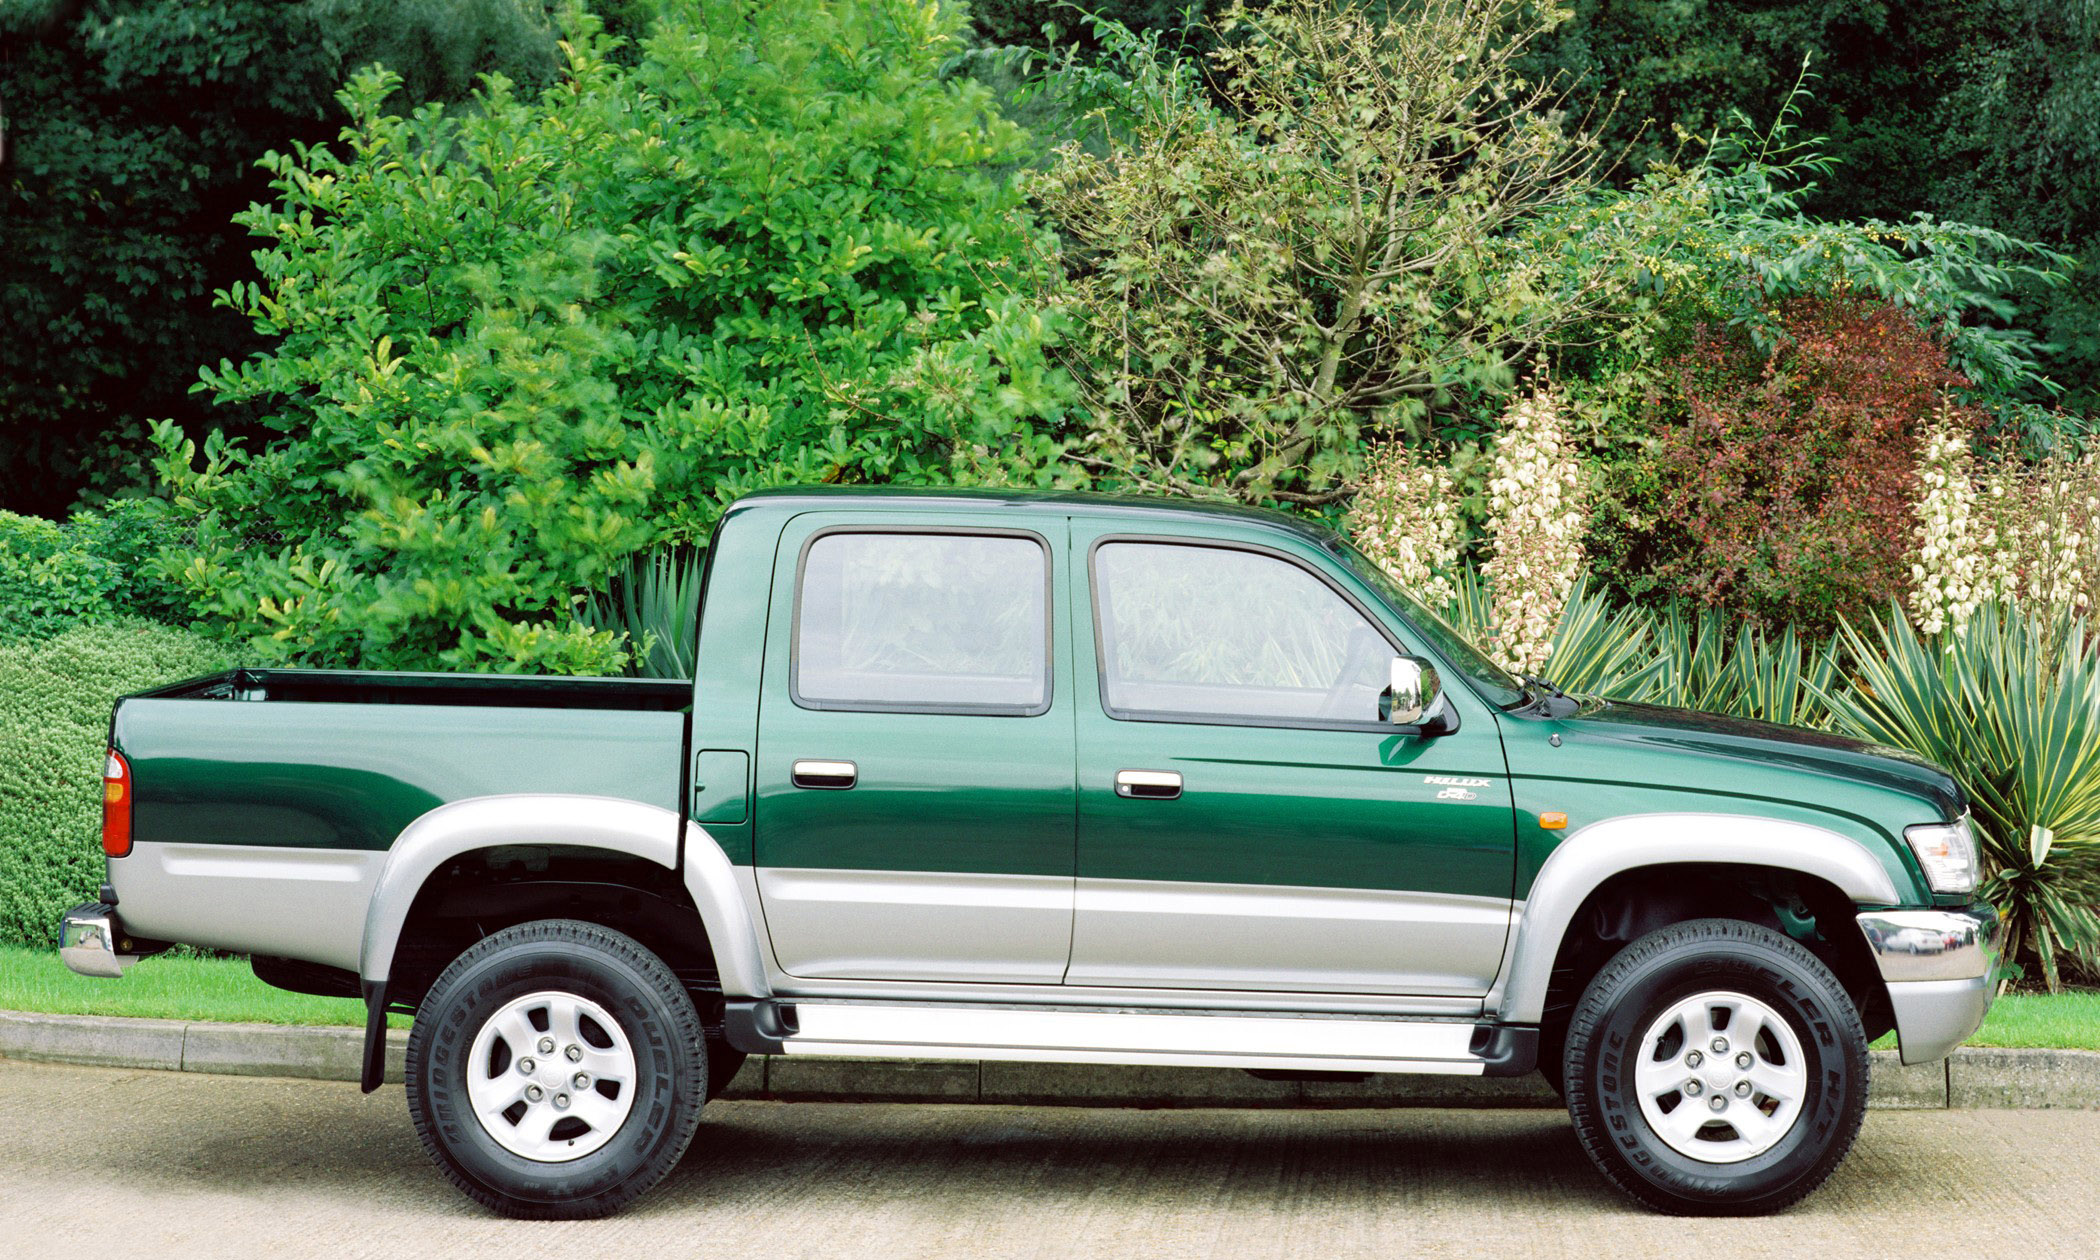 2004 Toyota Hilux Double Cab Picture 77123